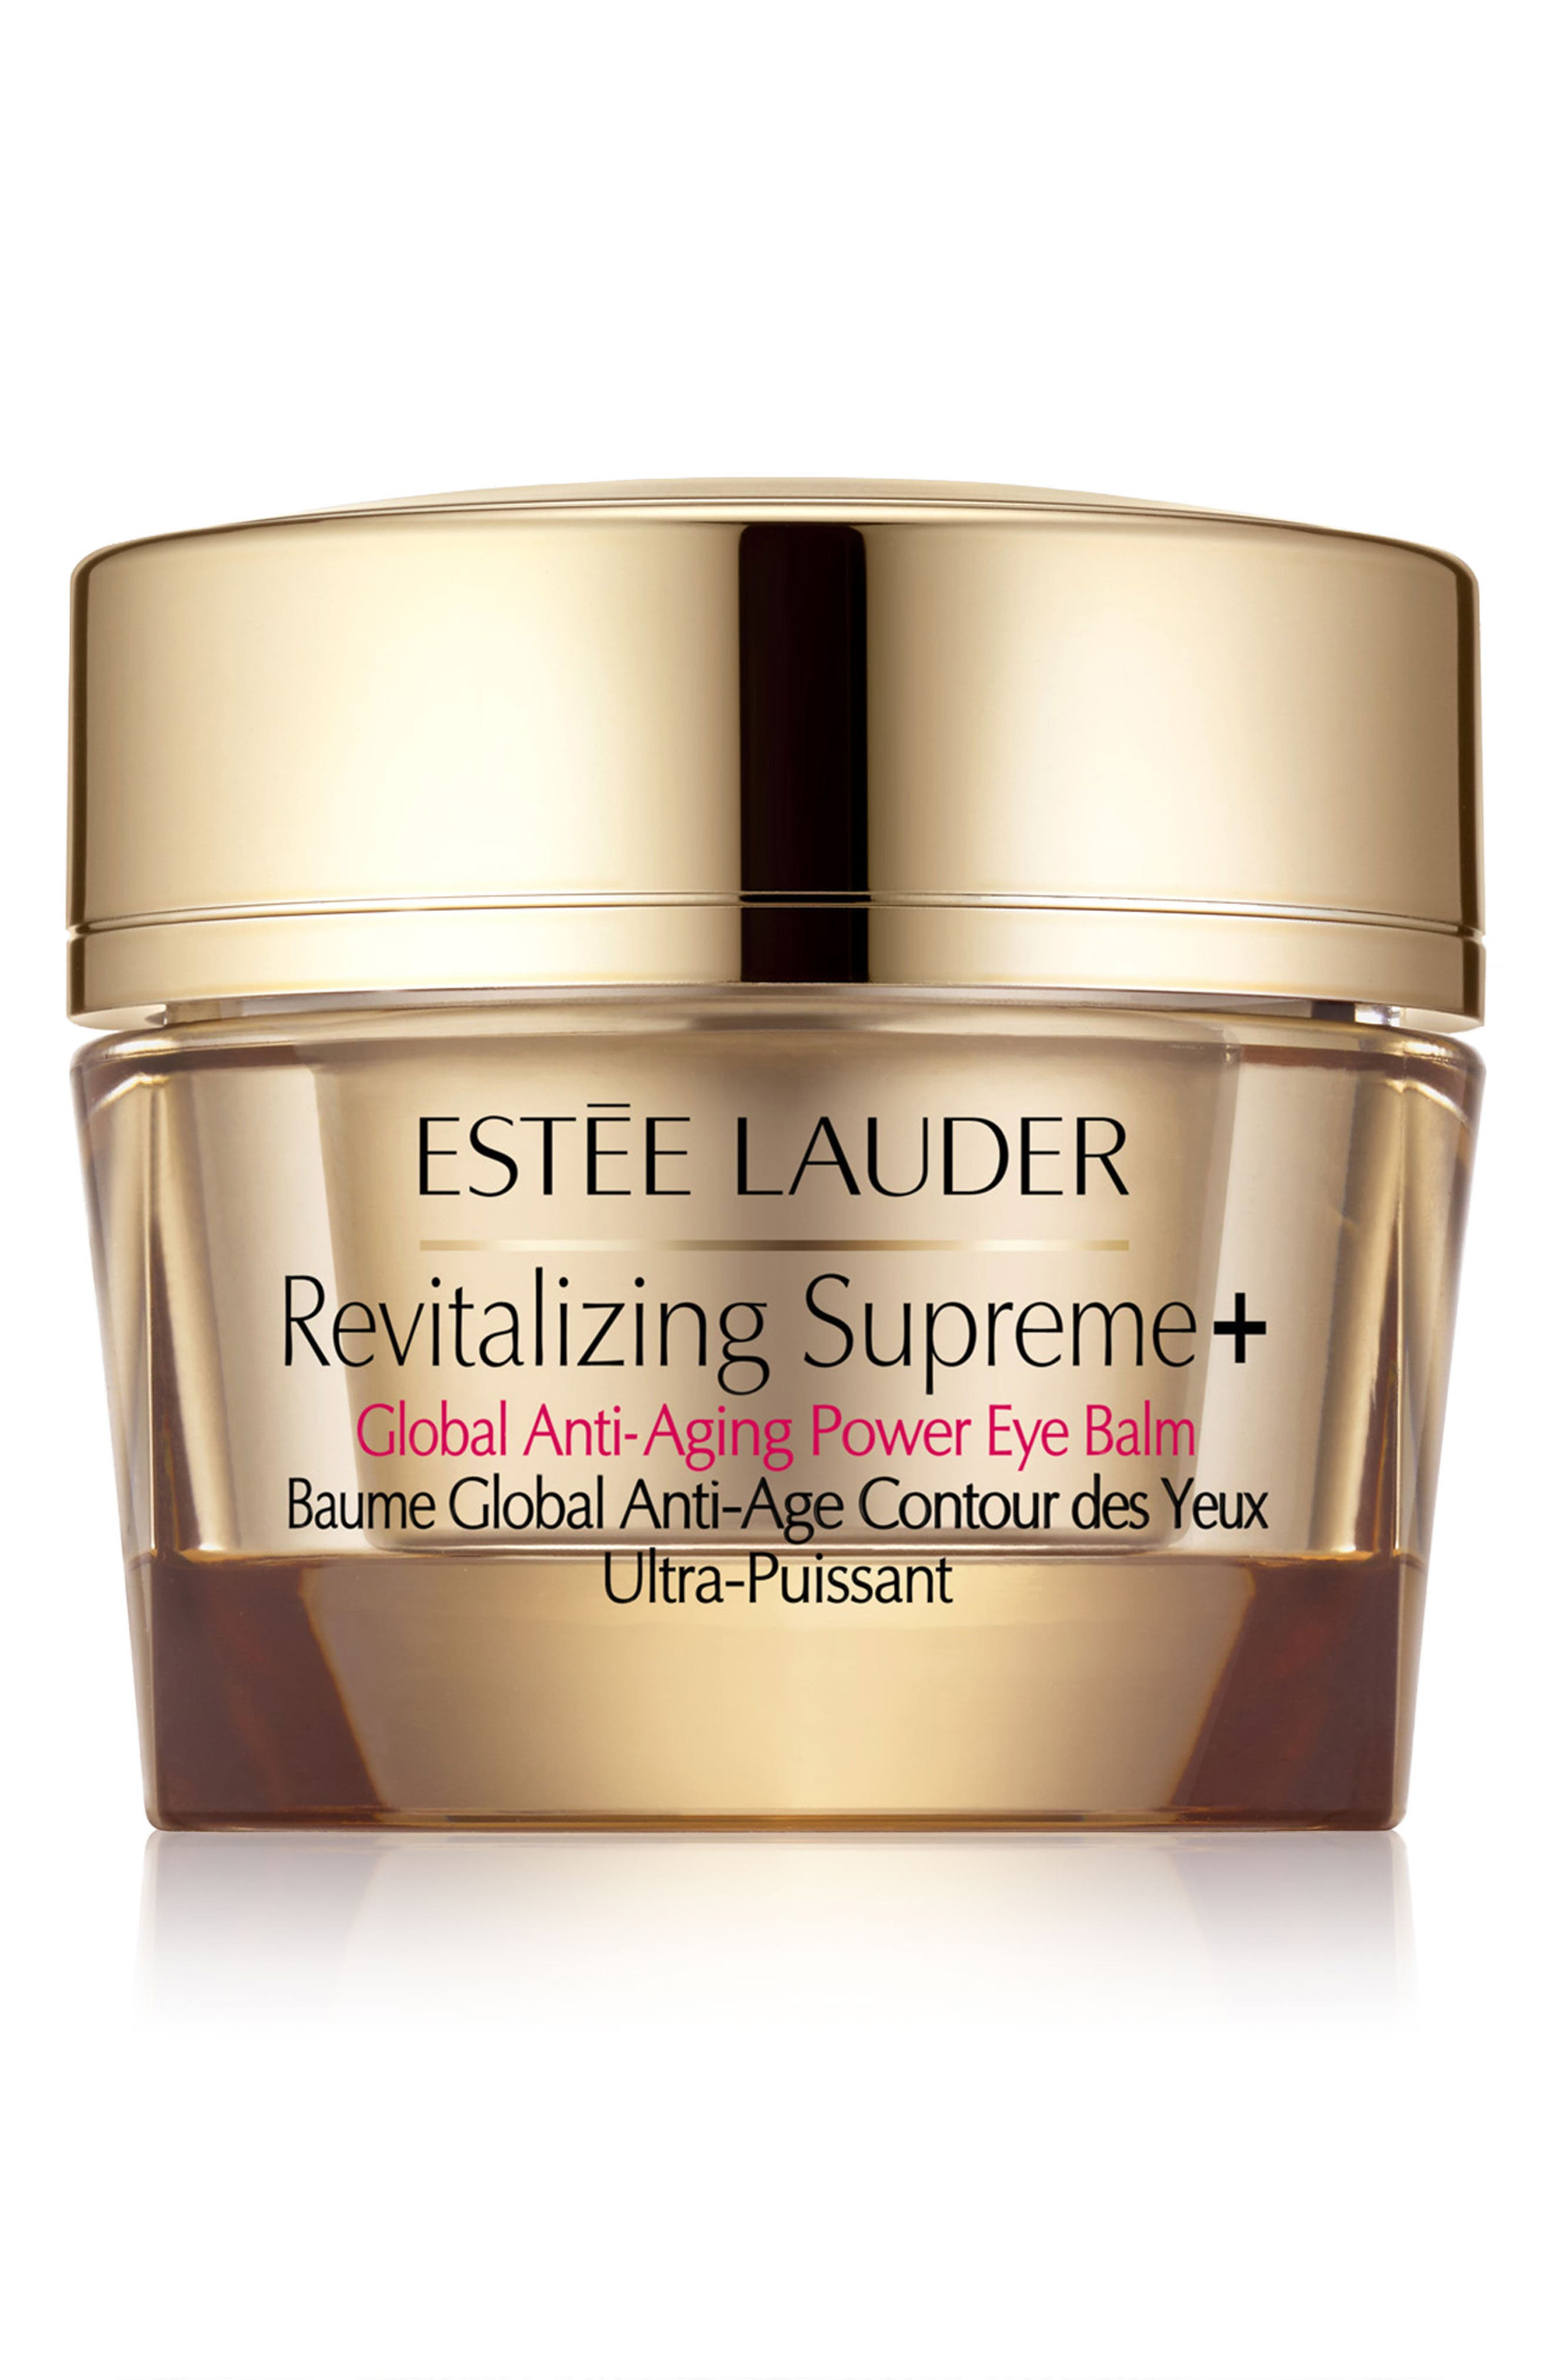 ESTÉE LAUDER, Revitalizing Supreme+ Global Anti-Aging Cell Power Eye Balm, Main thumbnail 1, color, NO COLOR